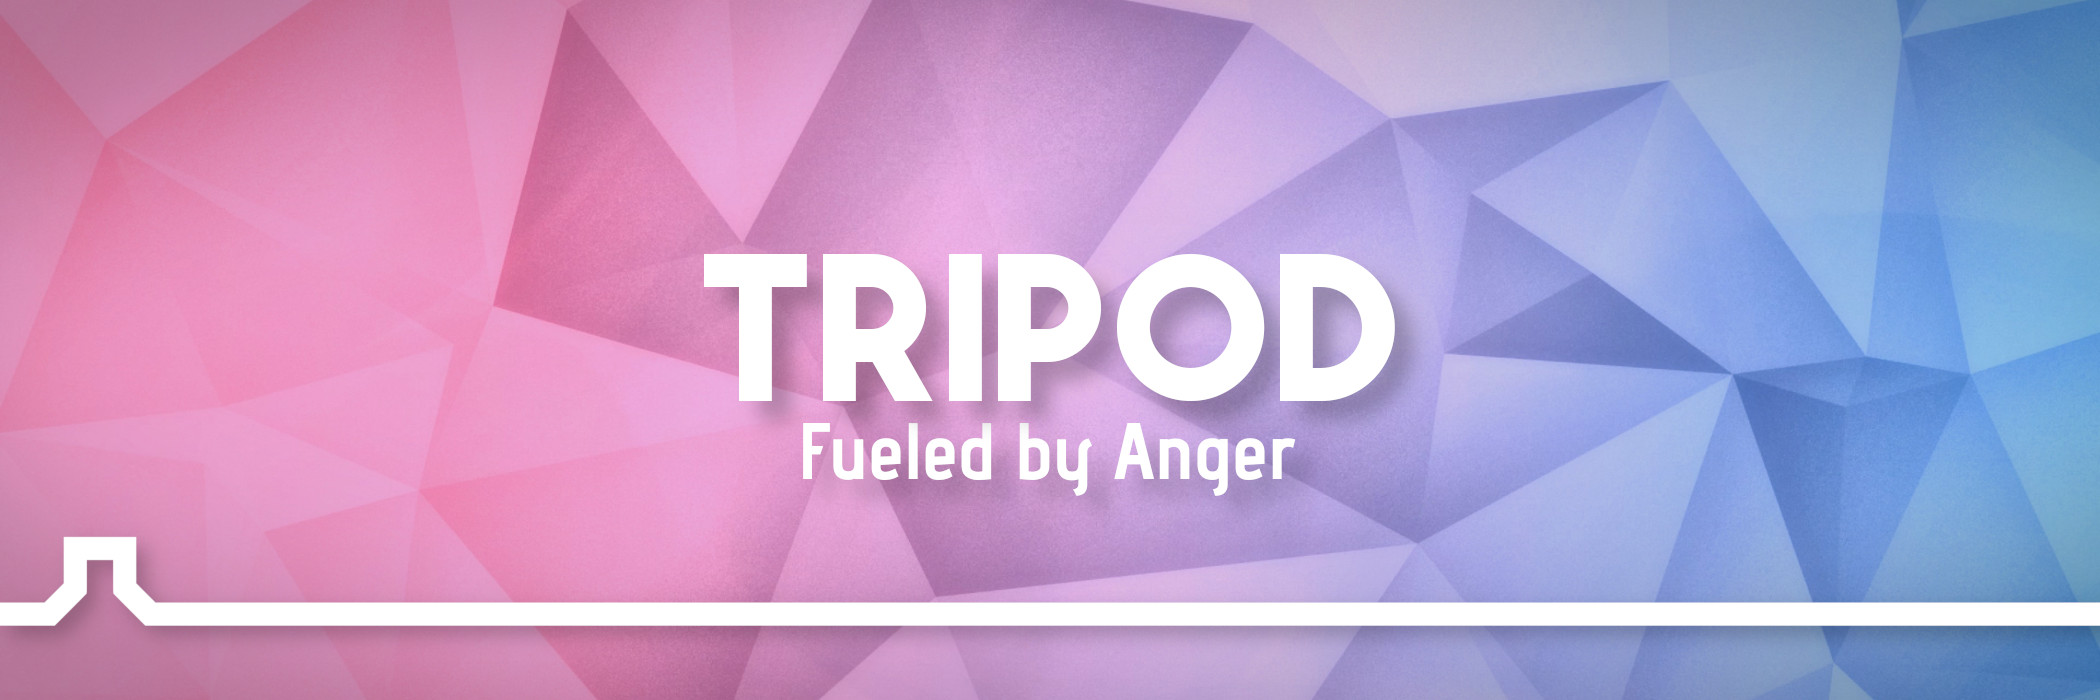 Fueled by Anger – Tripod ep. 3